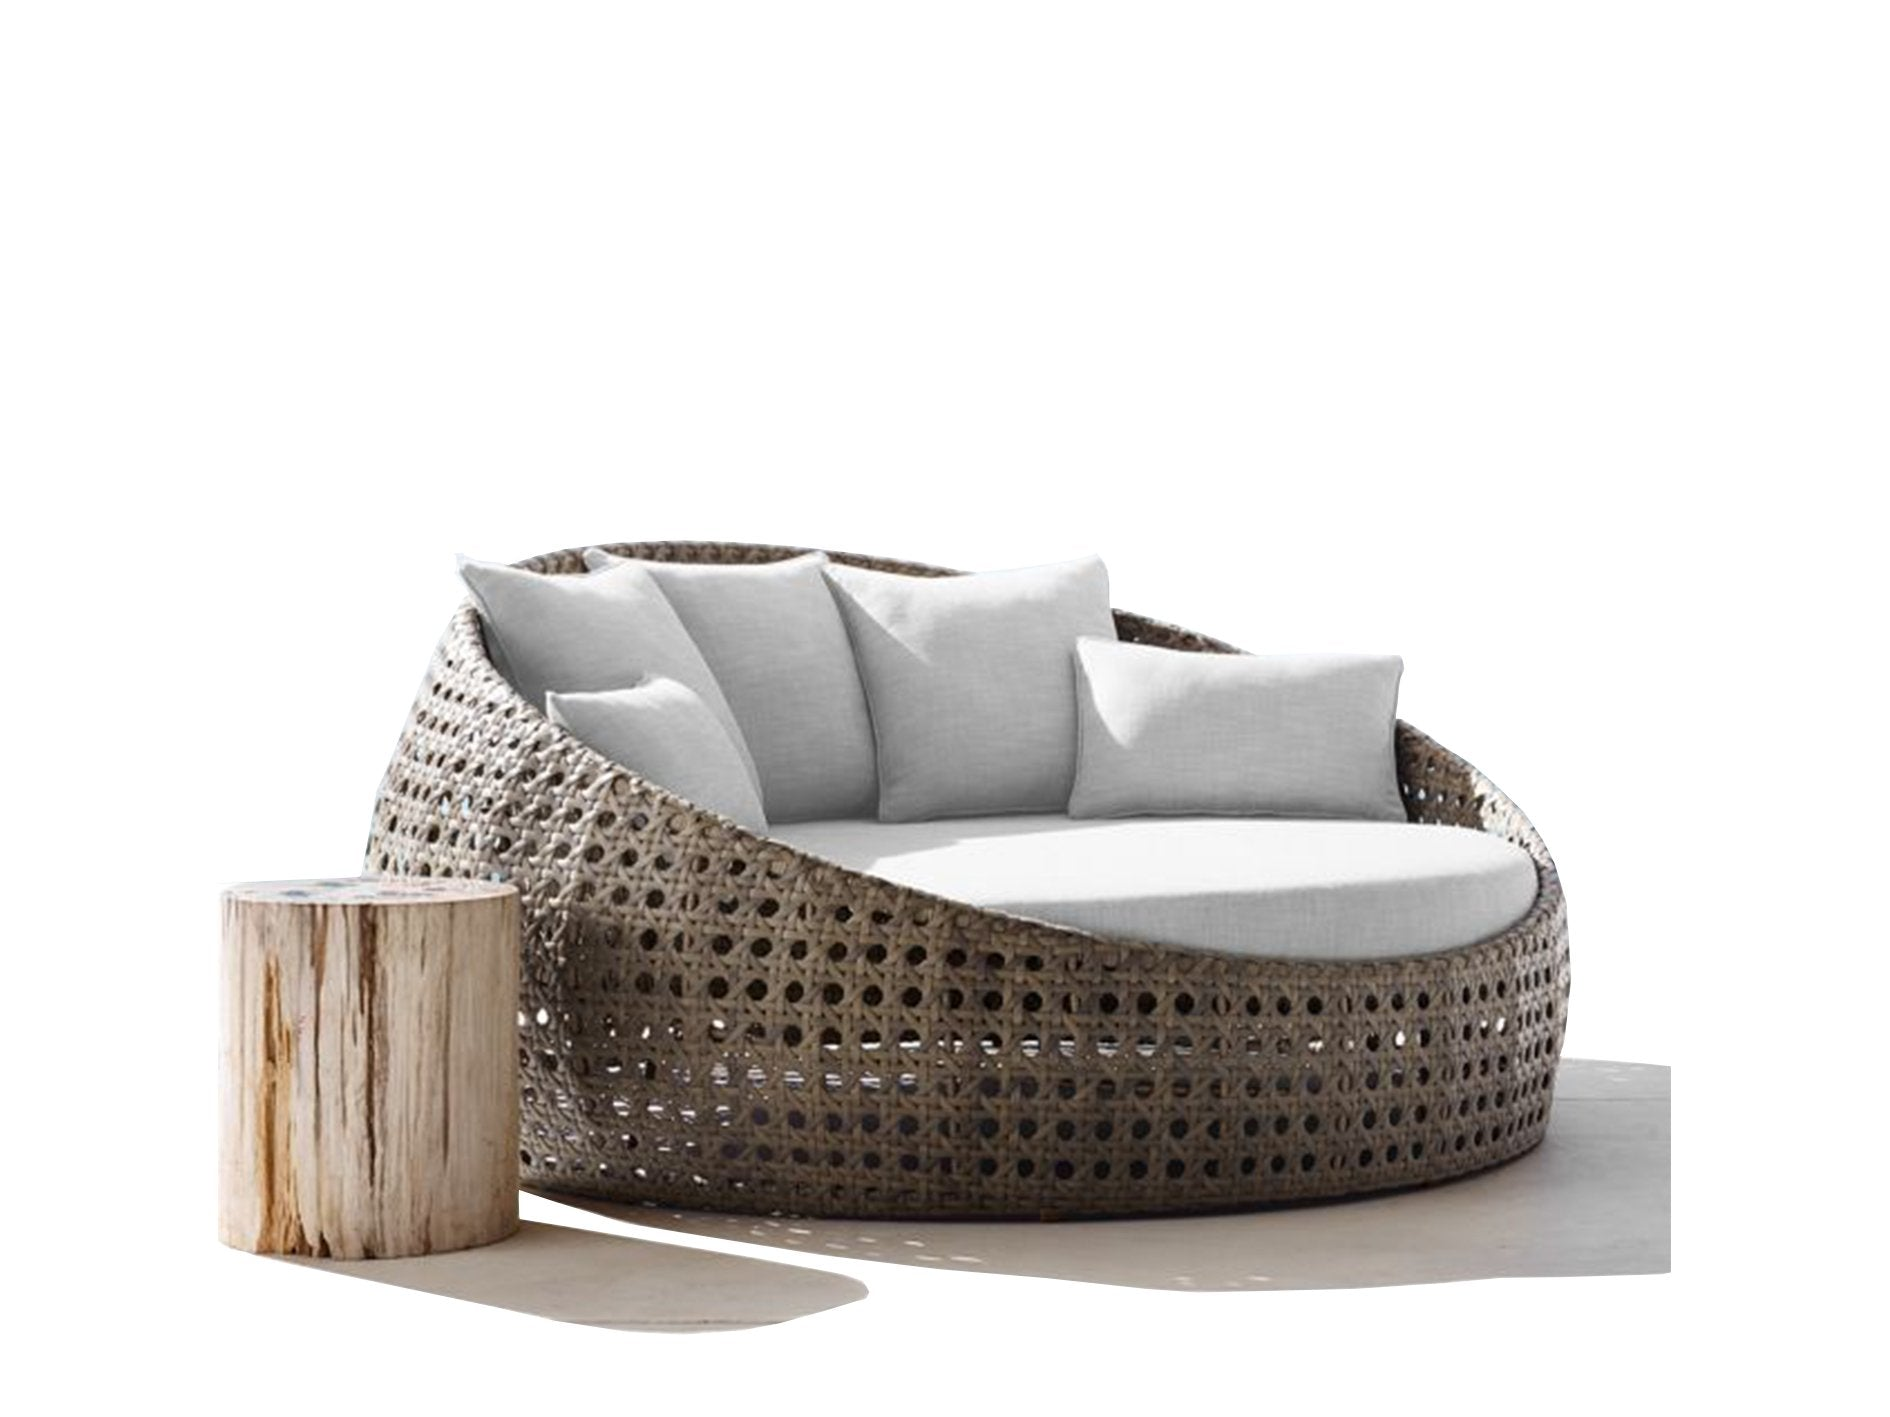 - Round Outdoor Day Bed Replacement Cushions - Foam Sales